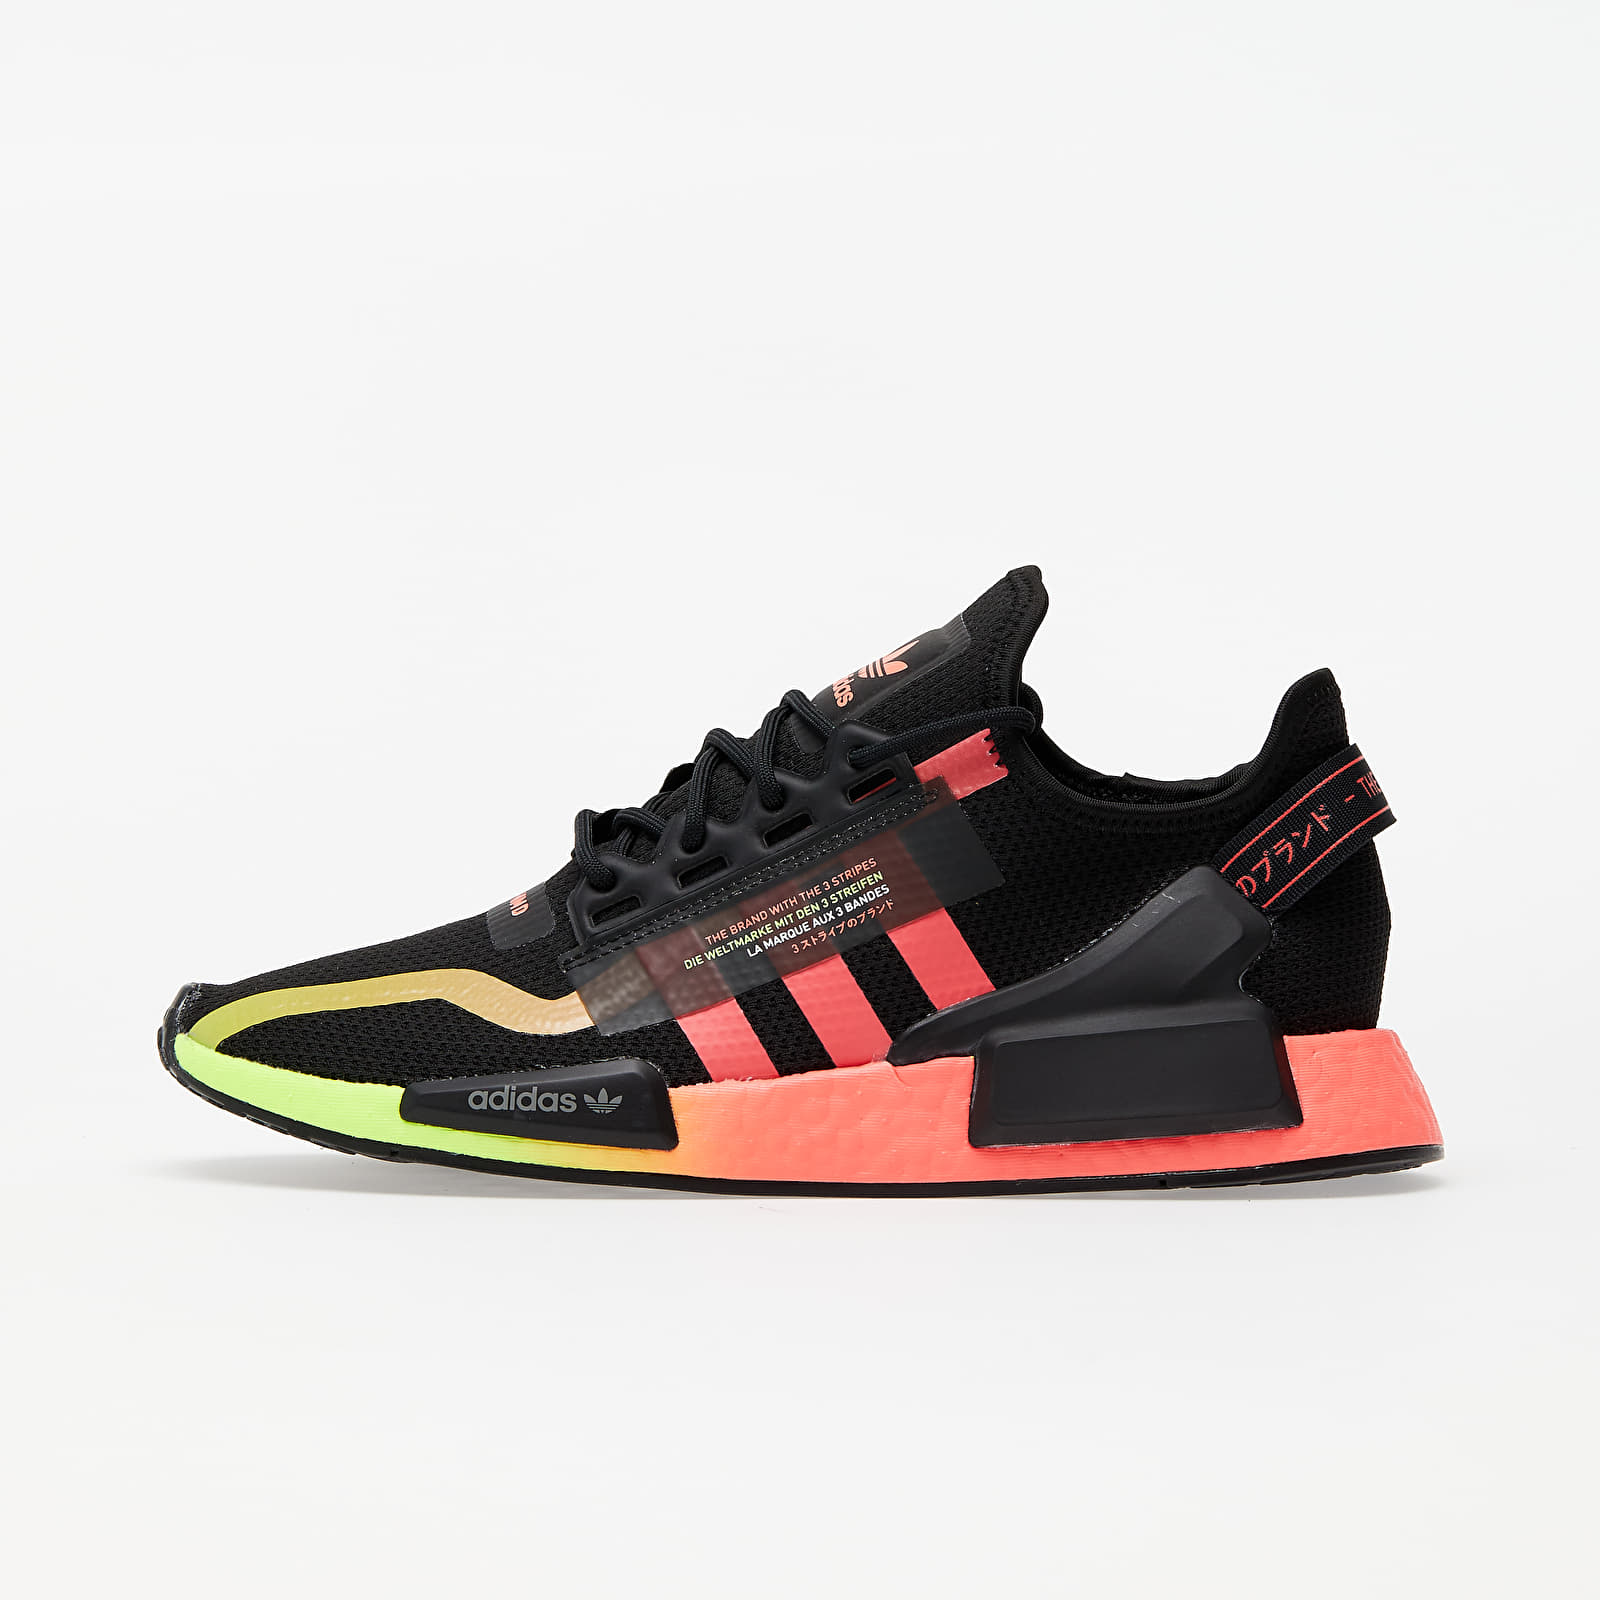 adidas NMD_R1.V2 Core Black/ Signature Pink/ Signature Green EUR 43 1/3